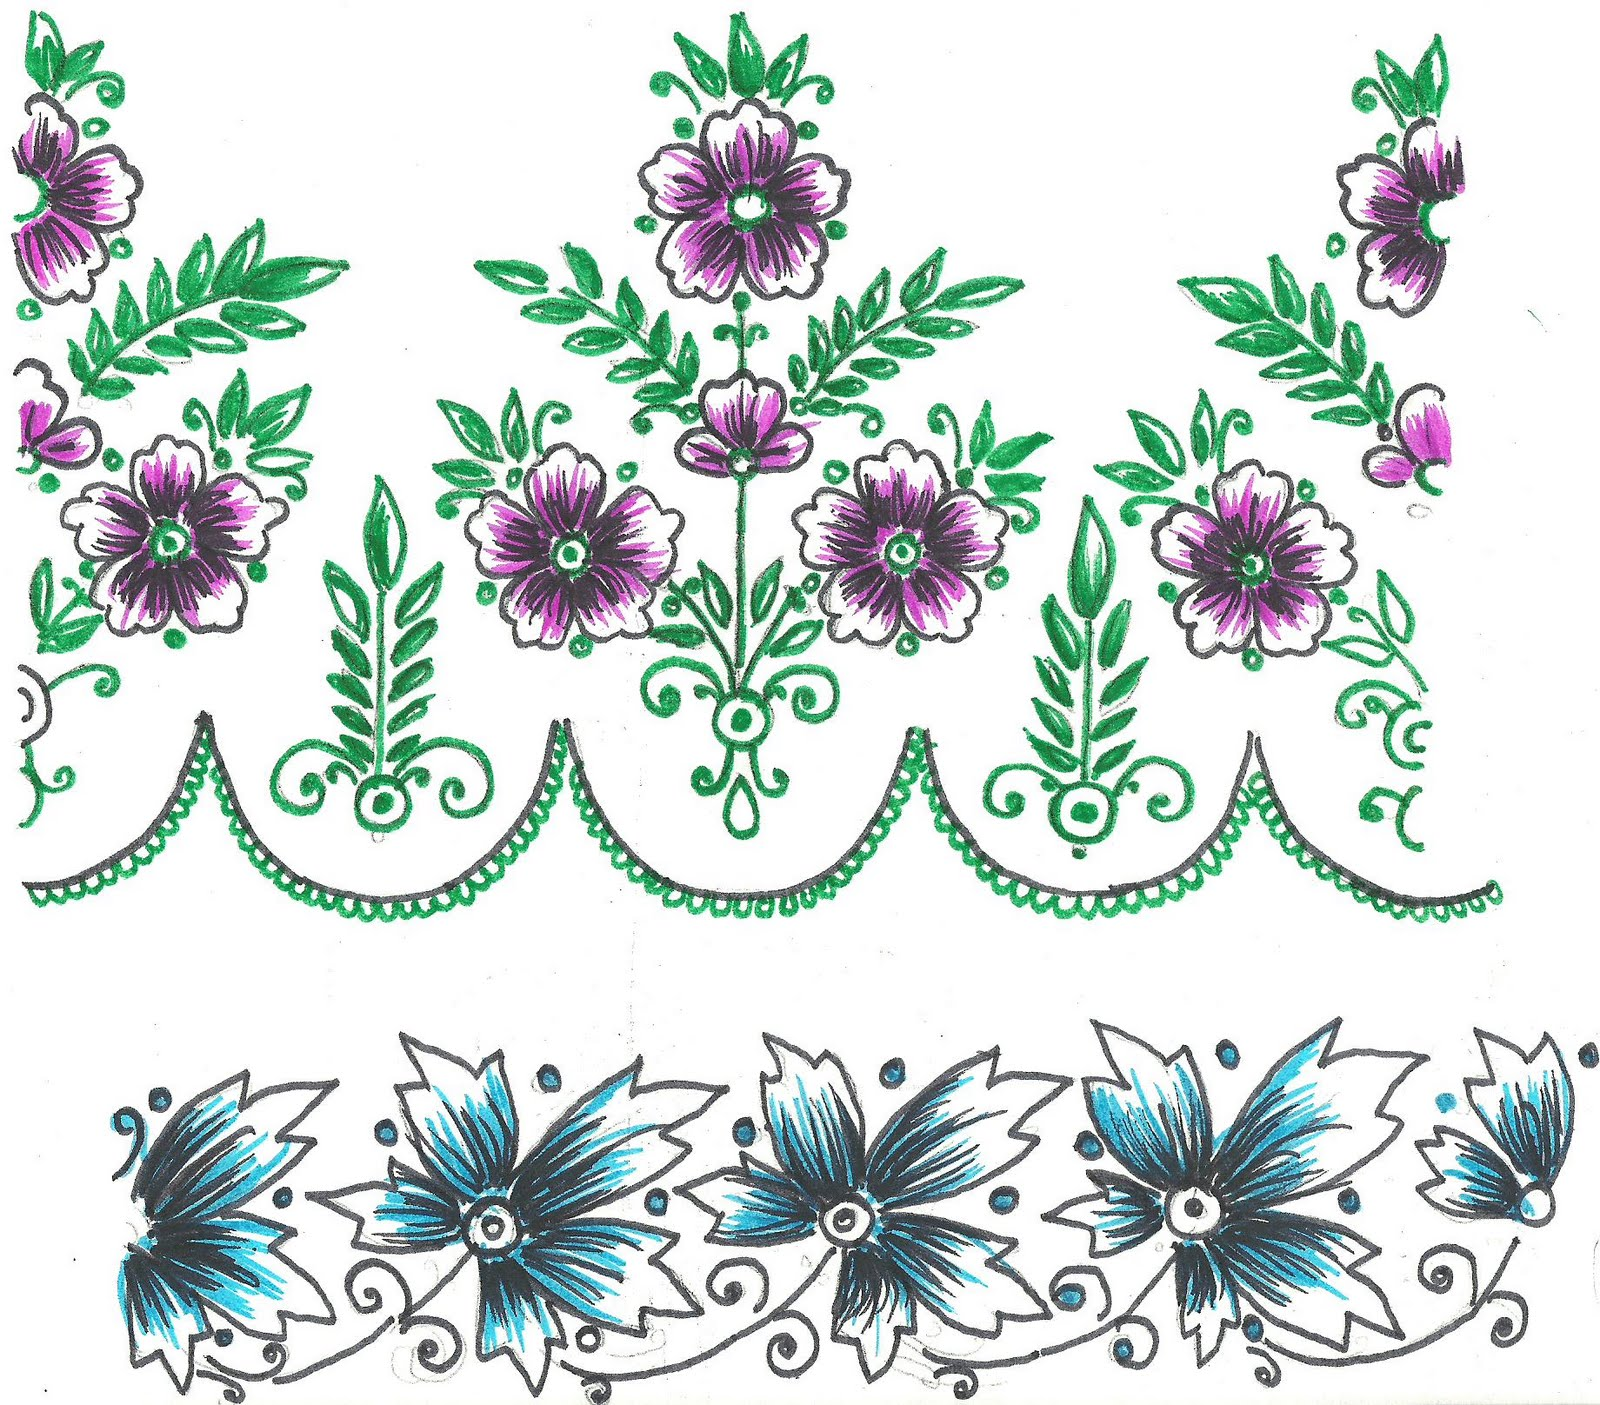 Embroidery Designs for Sarees Border http://9gag.ro/hand-embroidery-designs-for-sarees-border.htm